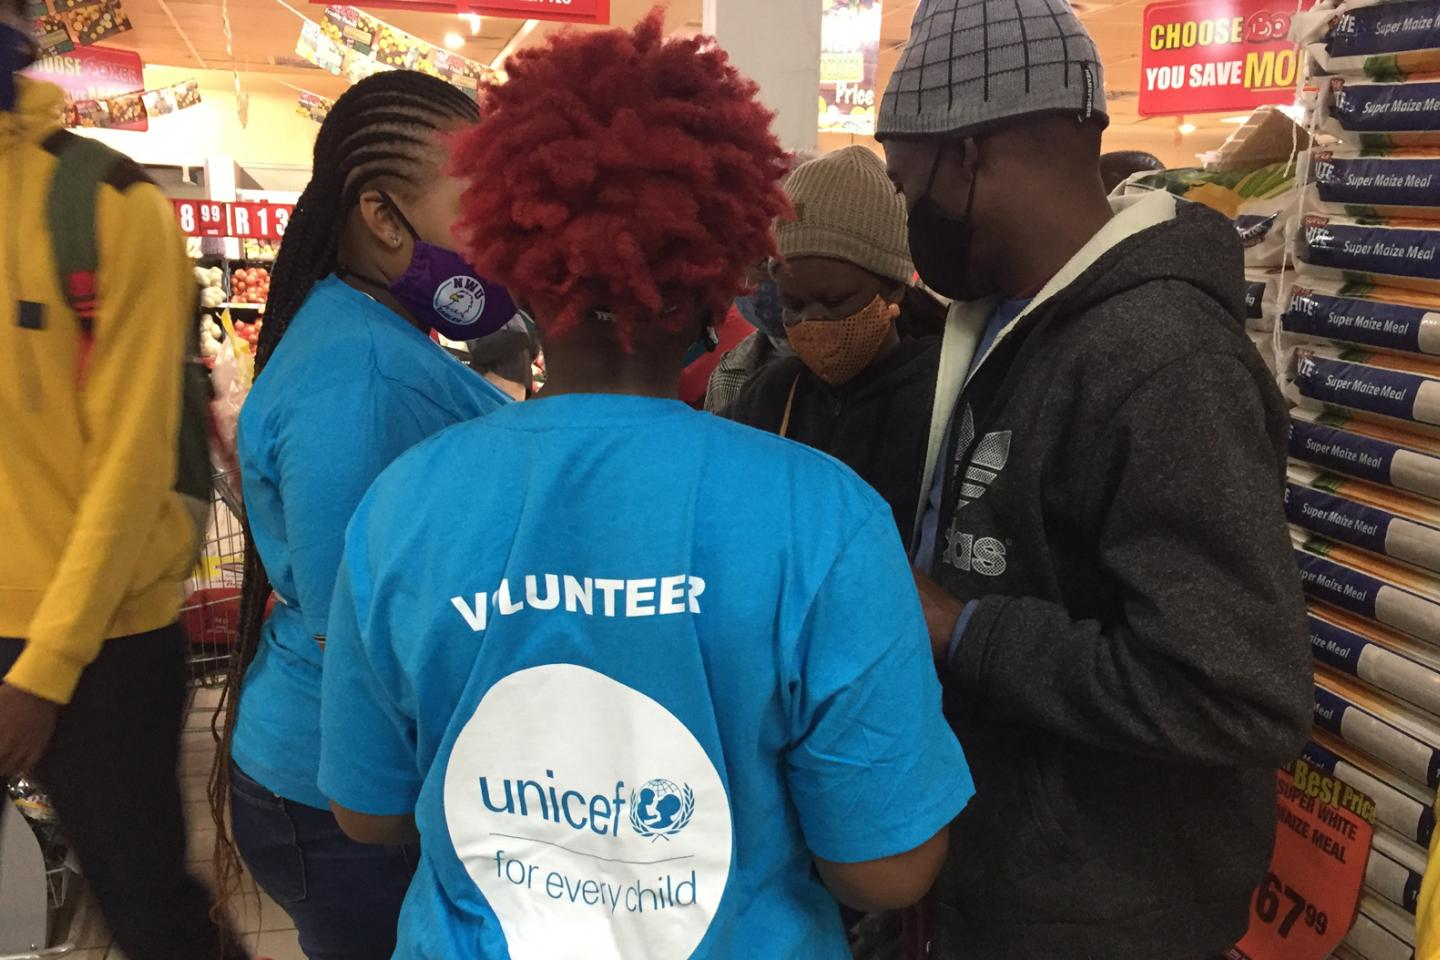 UNICEF volunteers help the elderly register for their COVID-19 vaccinations